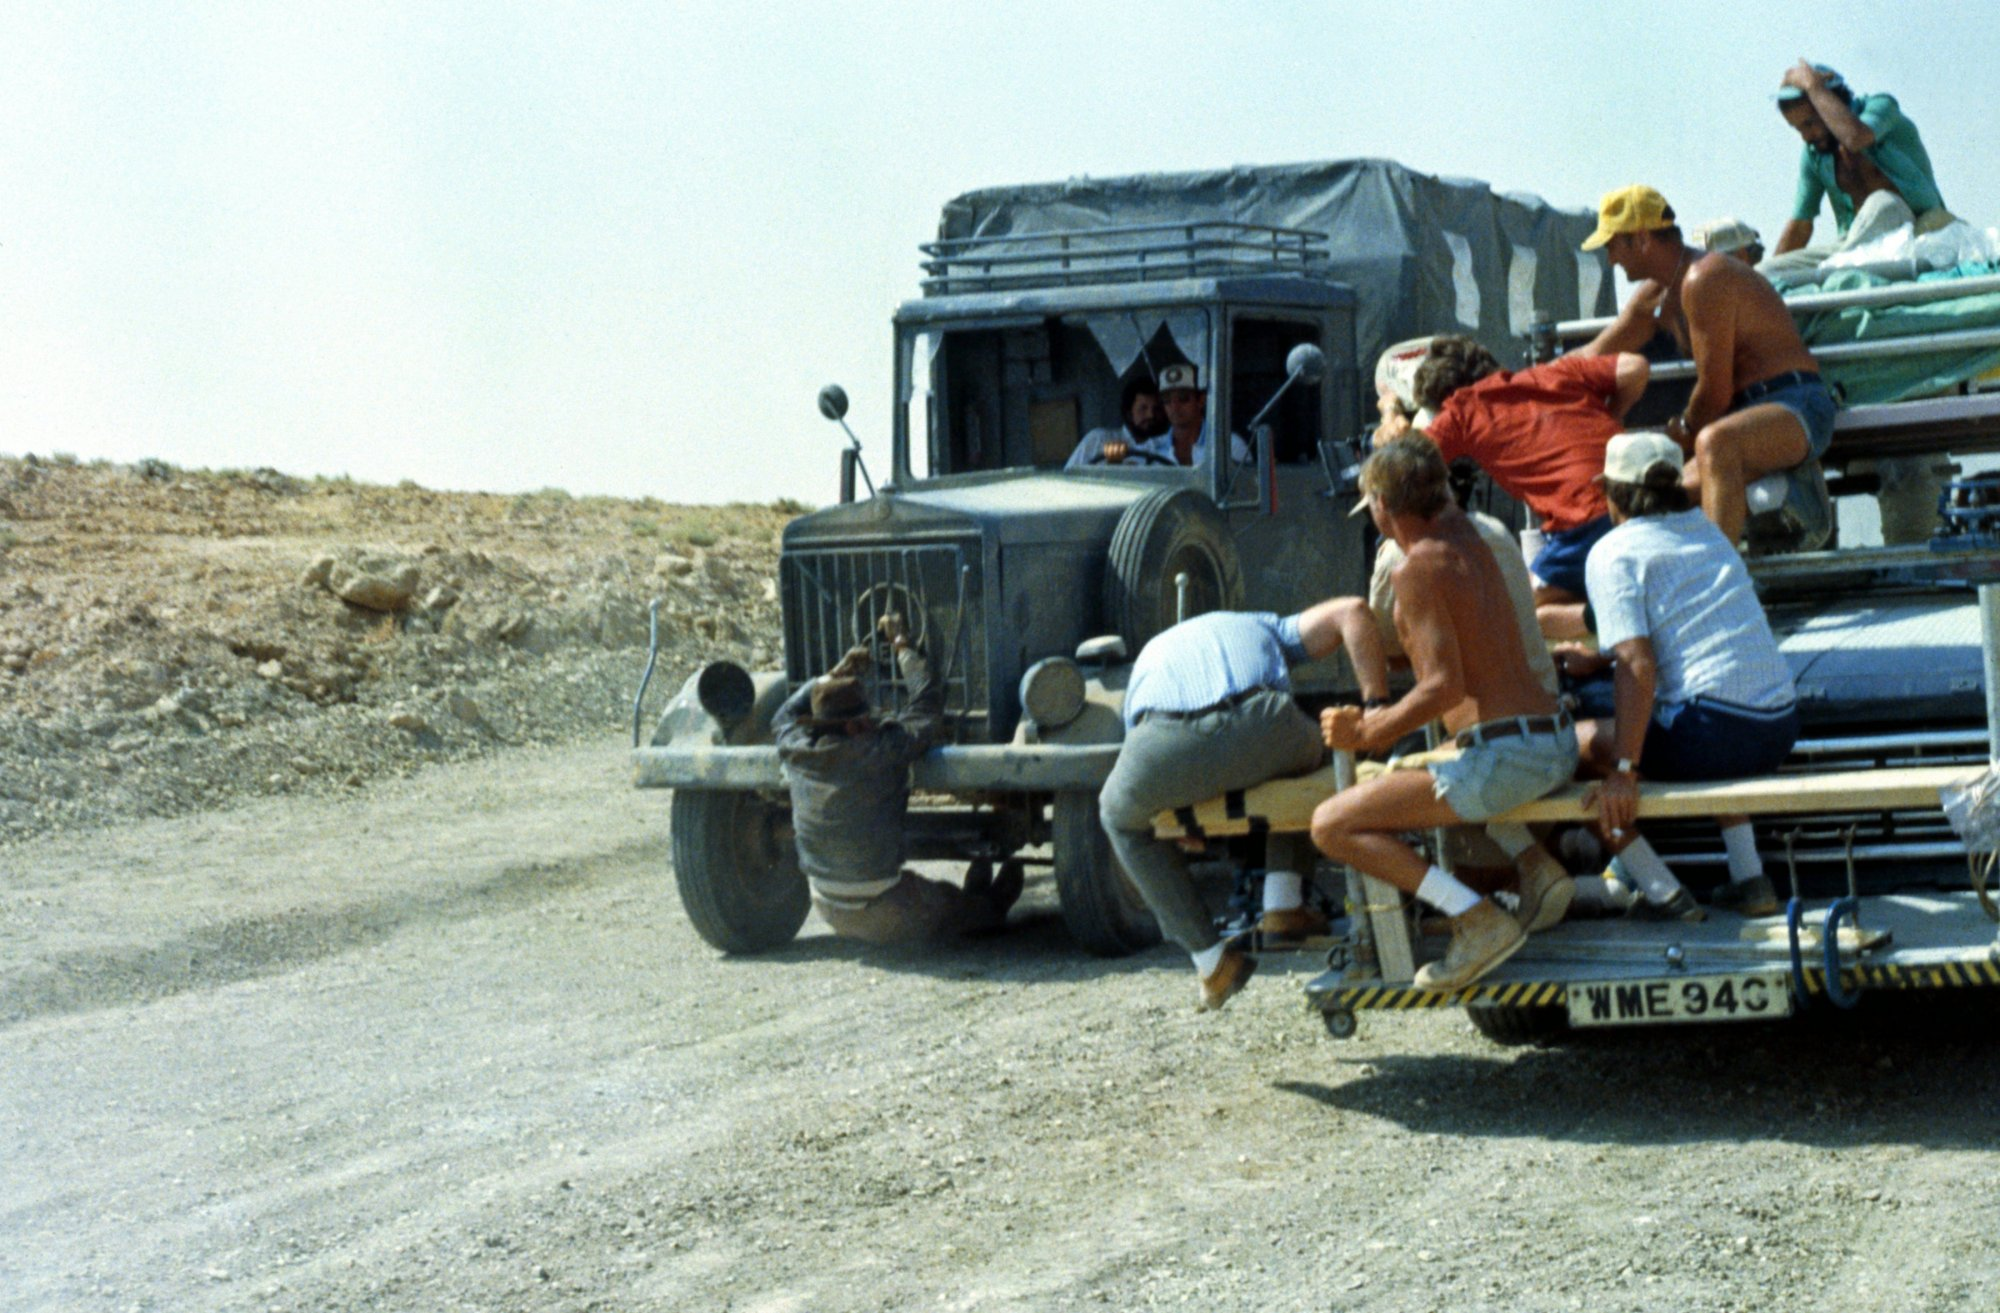 photo tournage coulisse cinema IndianaJones2 26 Photos sur des tournages de films #2